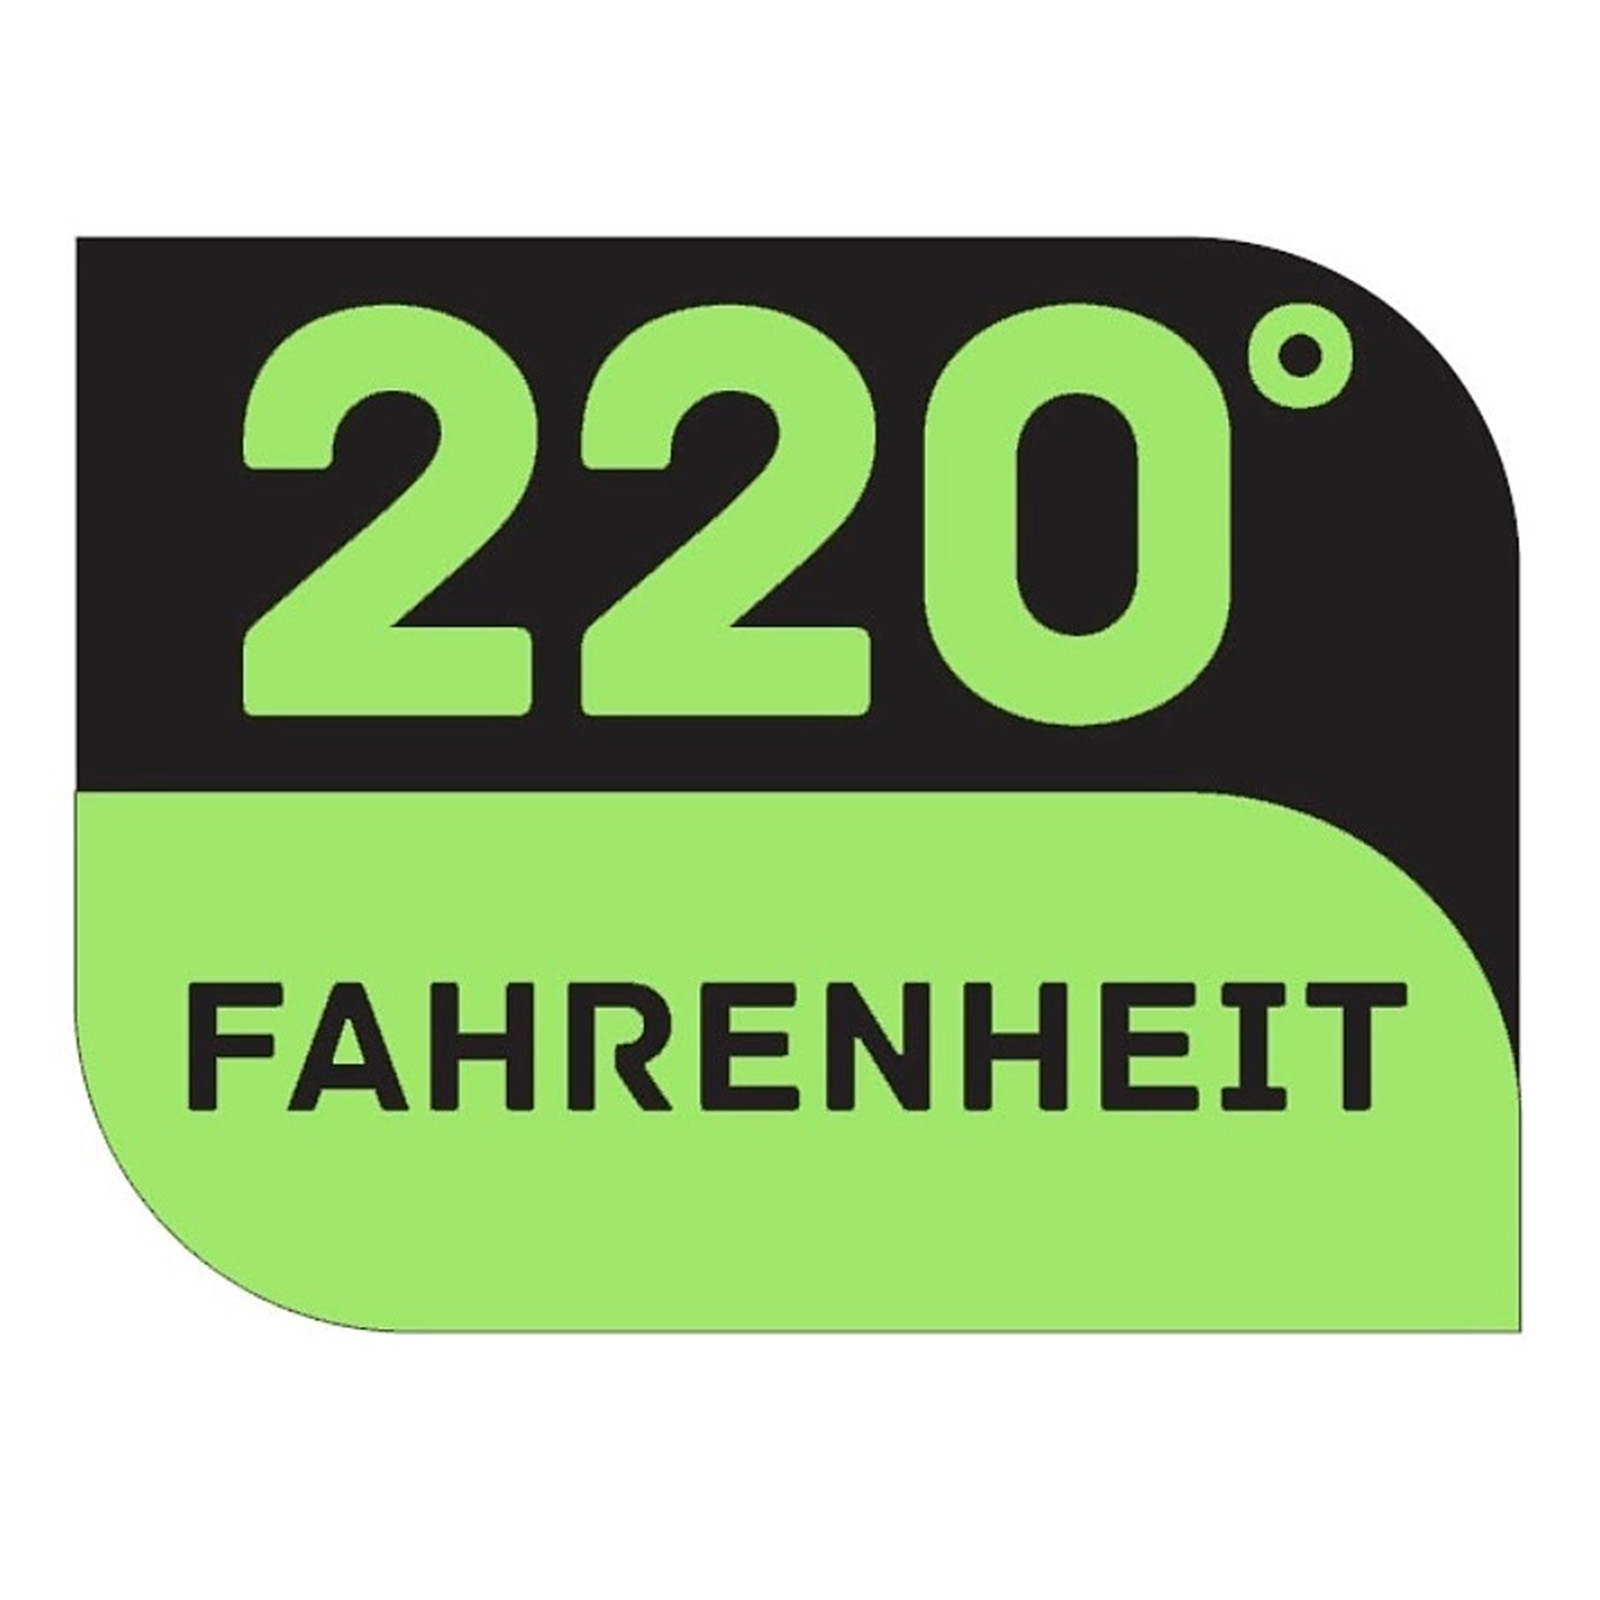 the 220 Fahrenheit logo for the realise a dream competition to support local entrepreneurs in the food industry in cape town